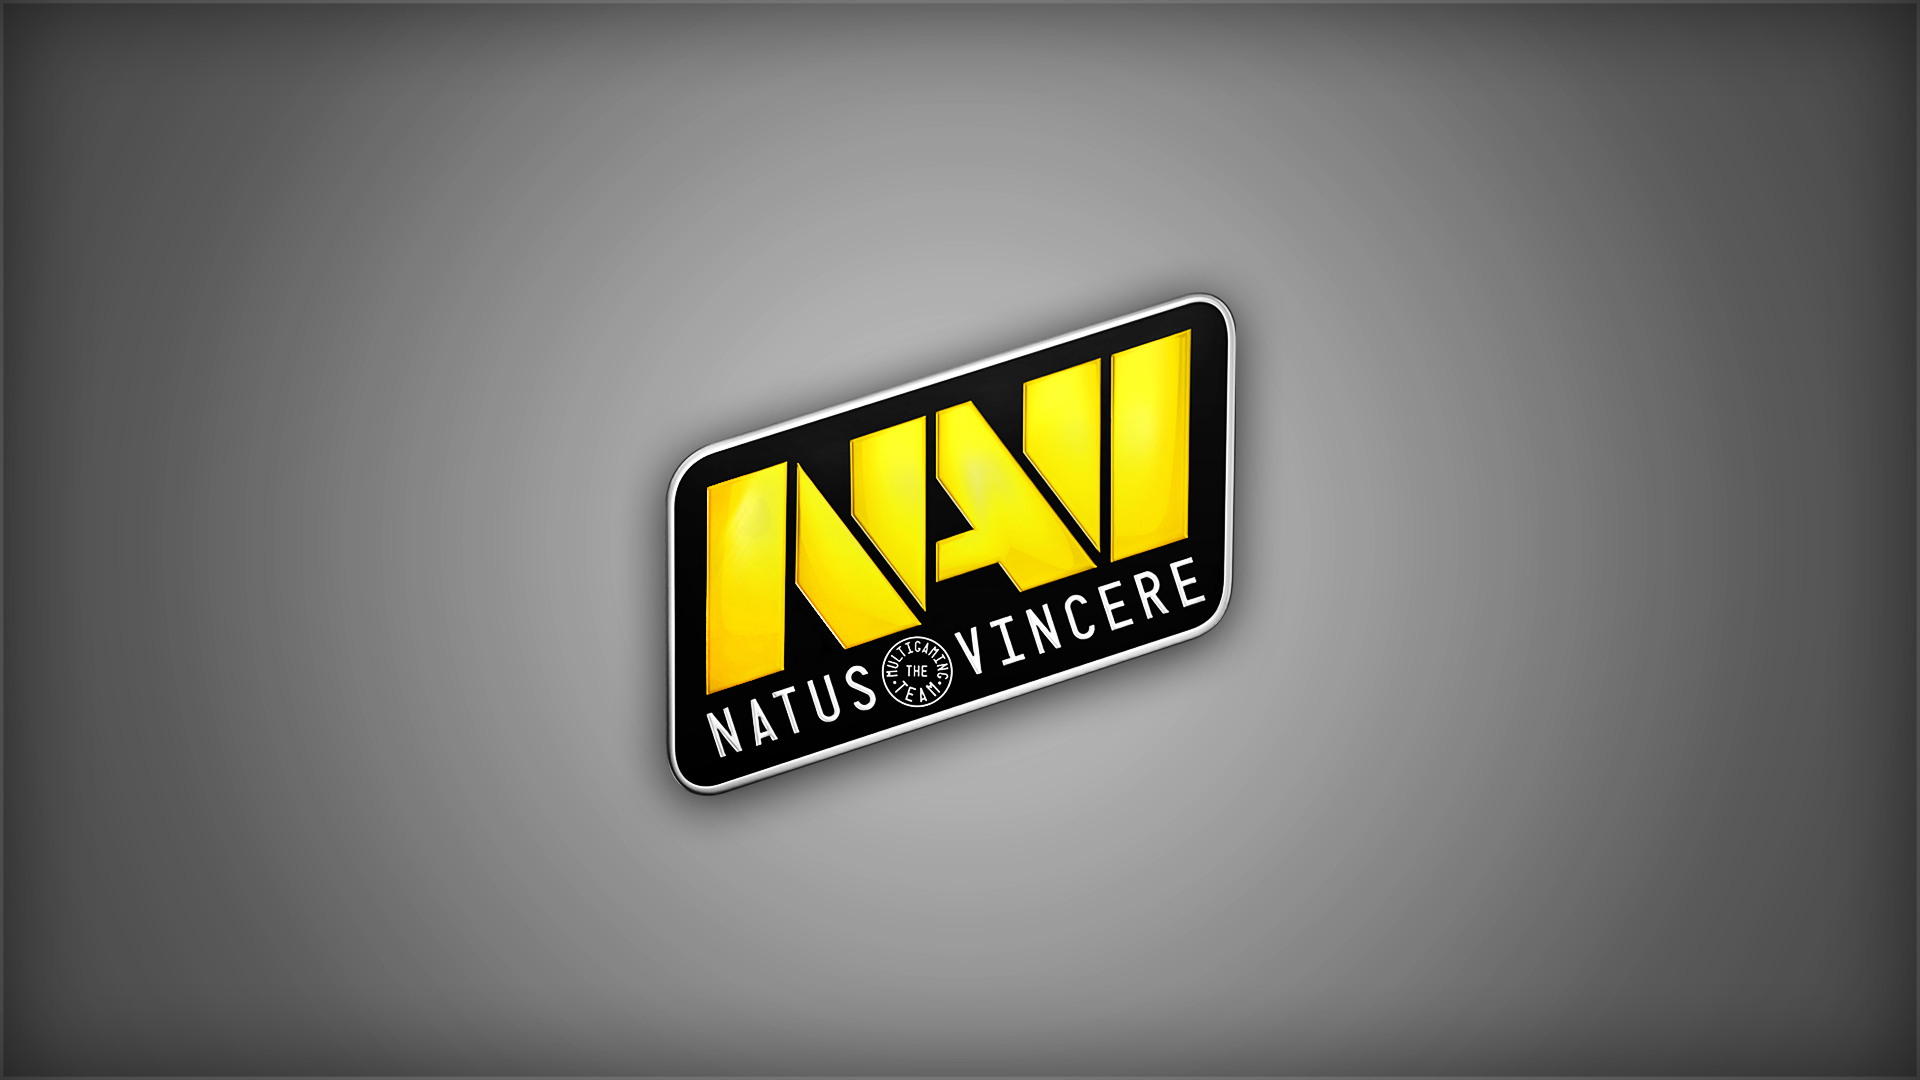 Navi dota 2 hd wallpapers 1920x1080 | Wallpapers Dota 2 private ...